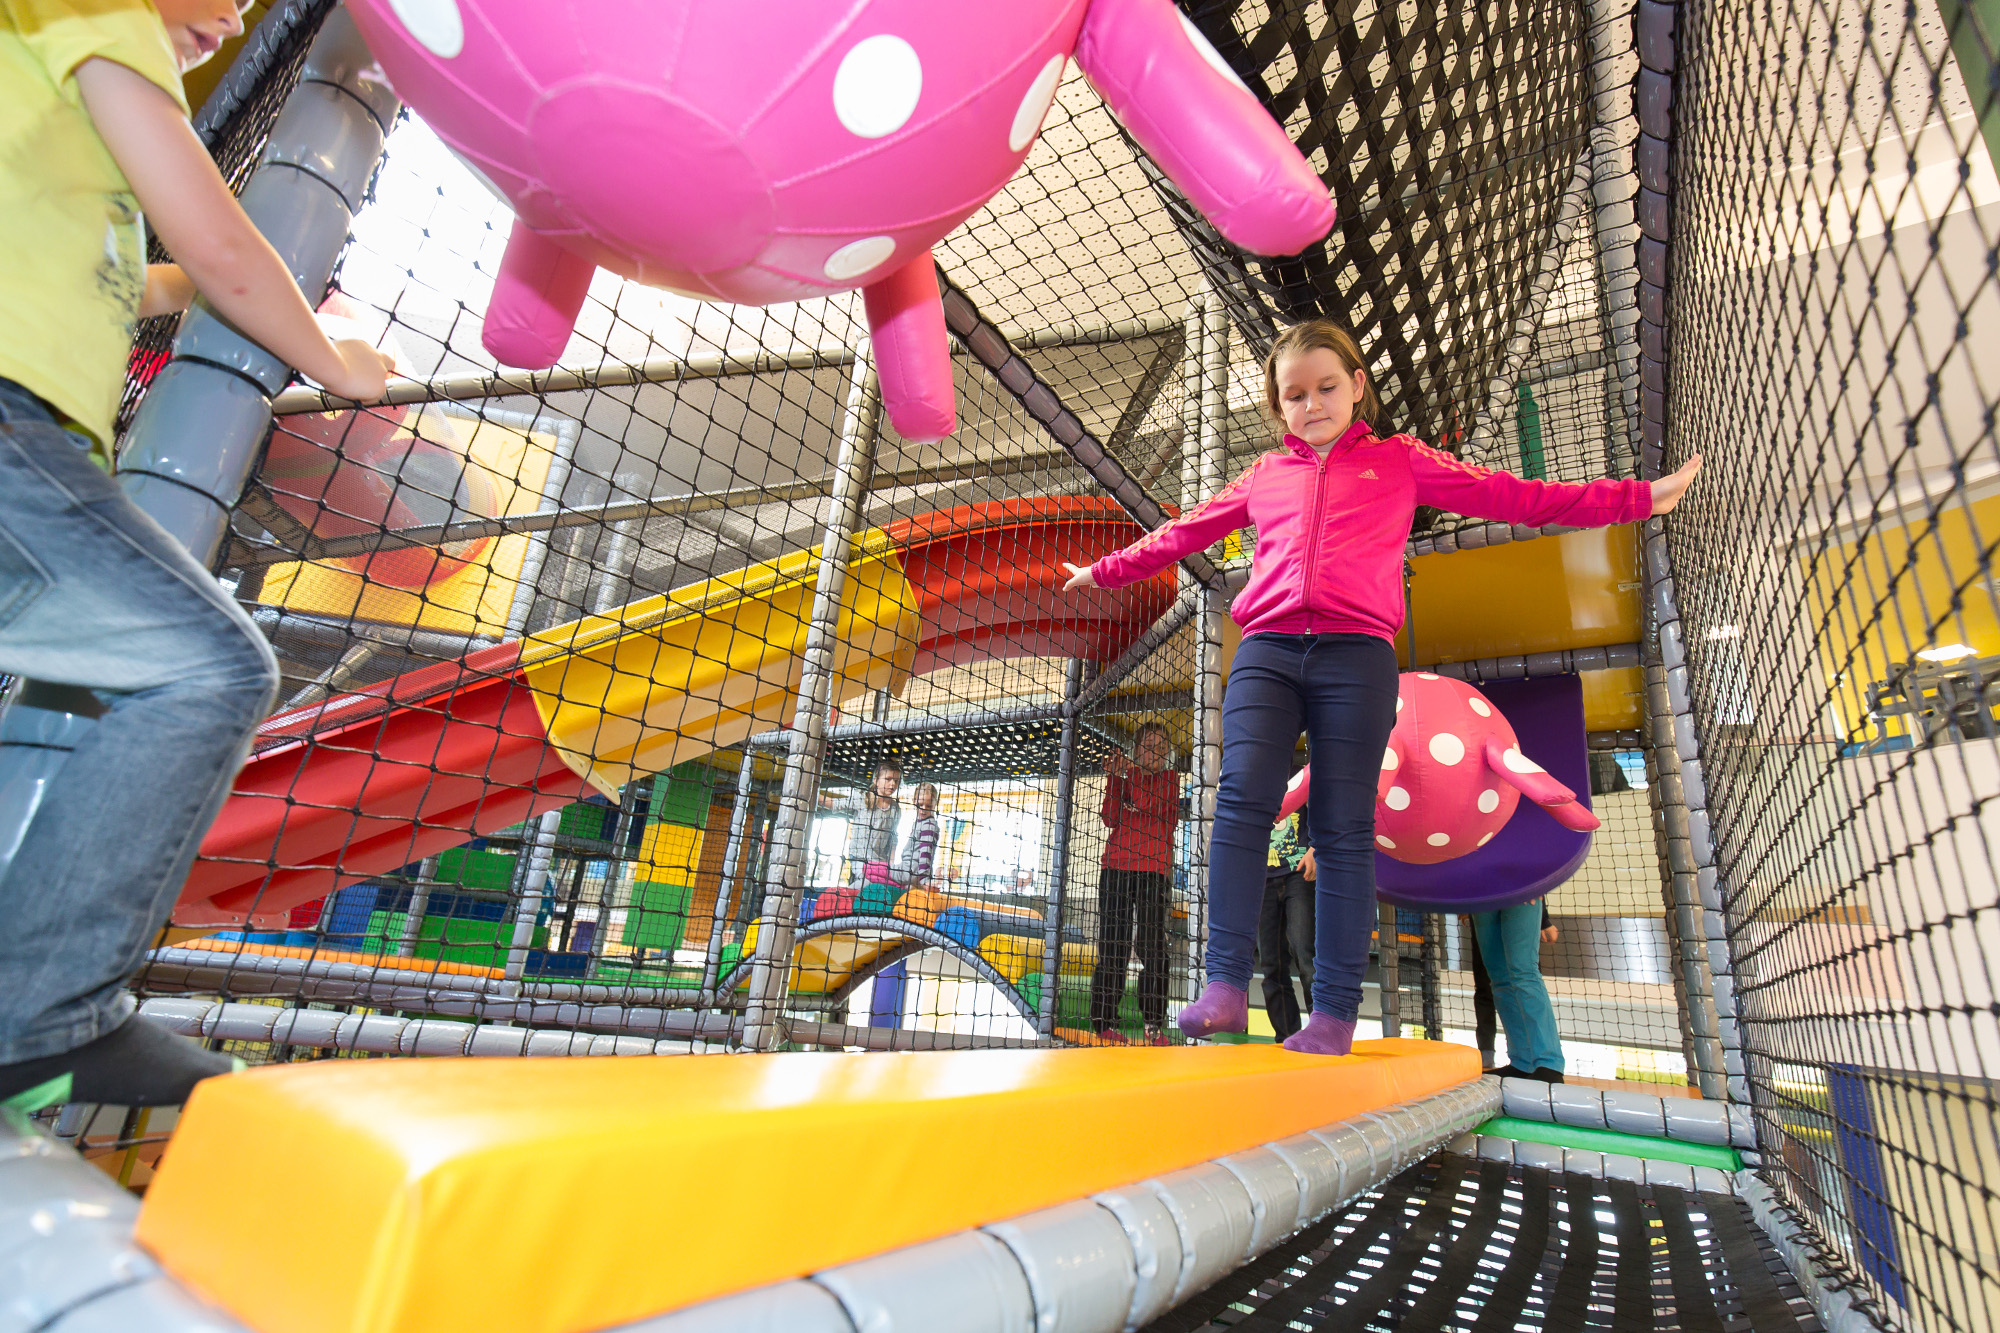 Softplay-Anlage des Kinderhotels AIGO